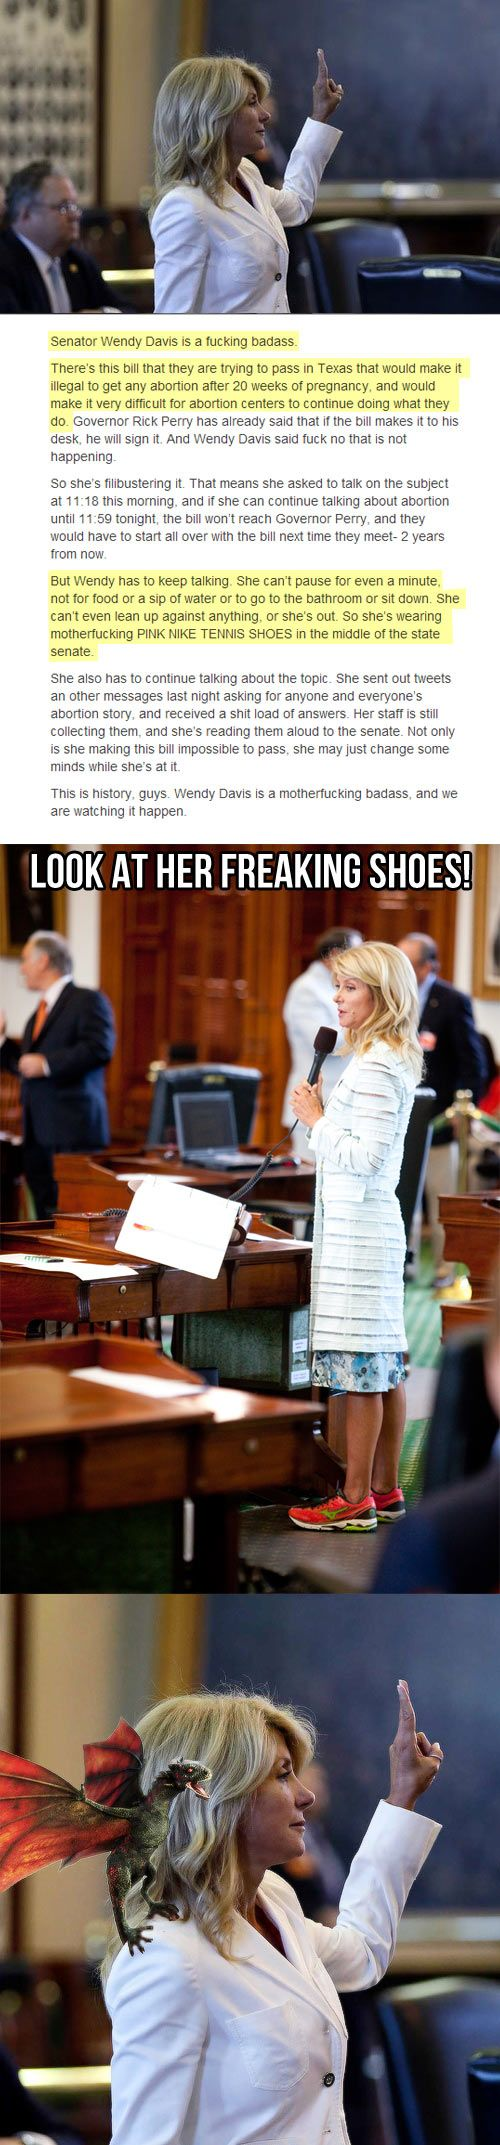 made the popular section again, wendy davis!!!! And of course the trolls are out in force unfortunately